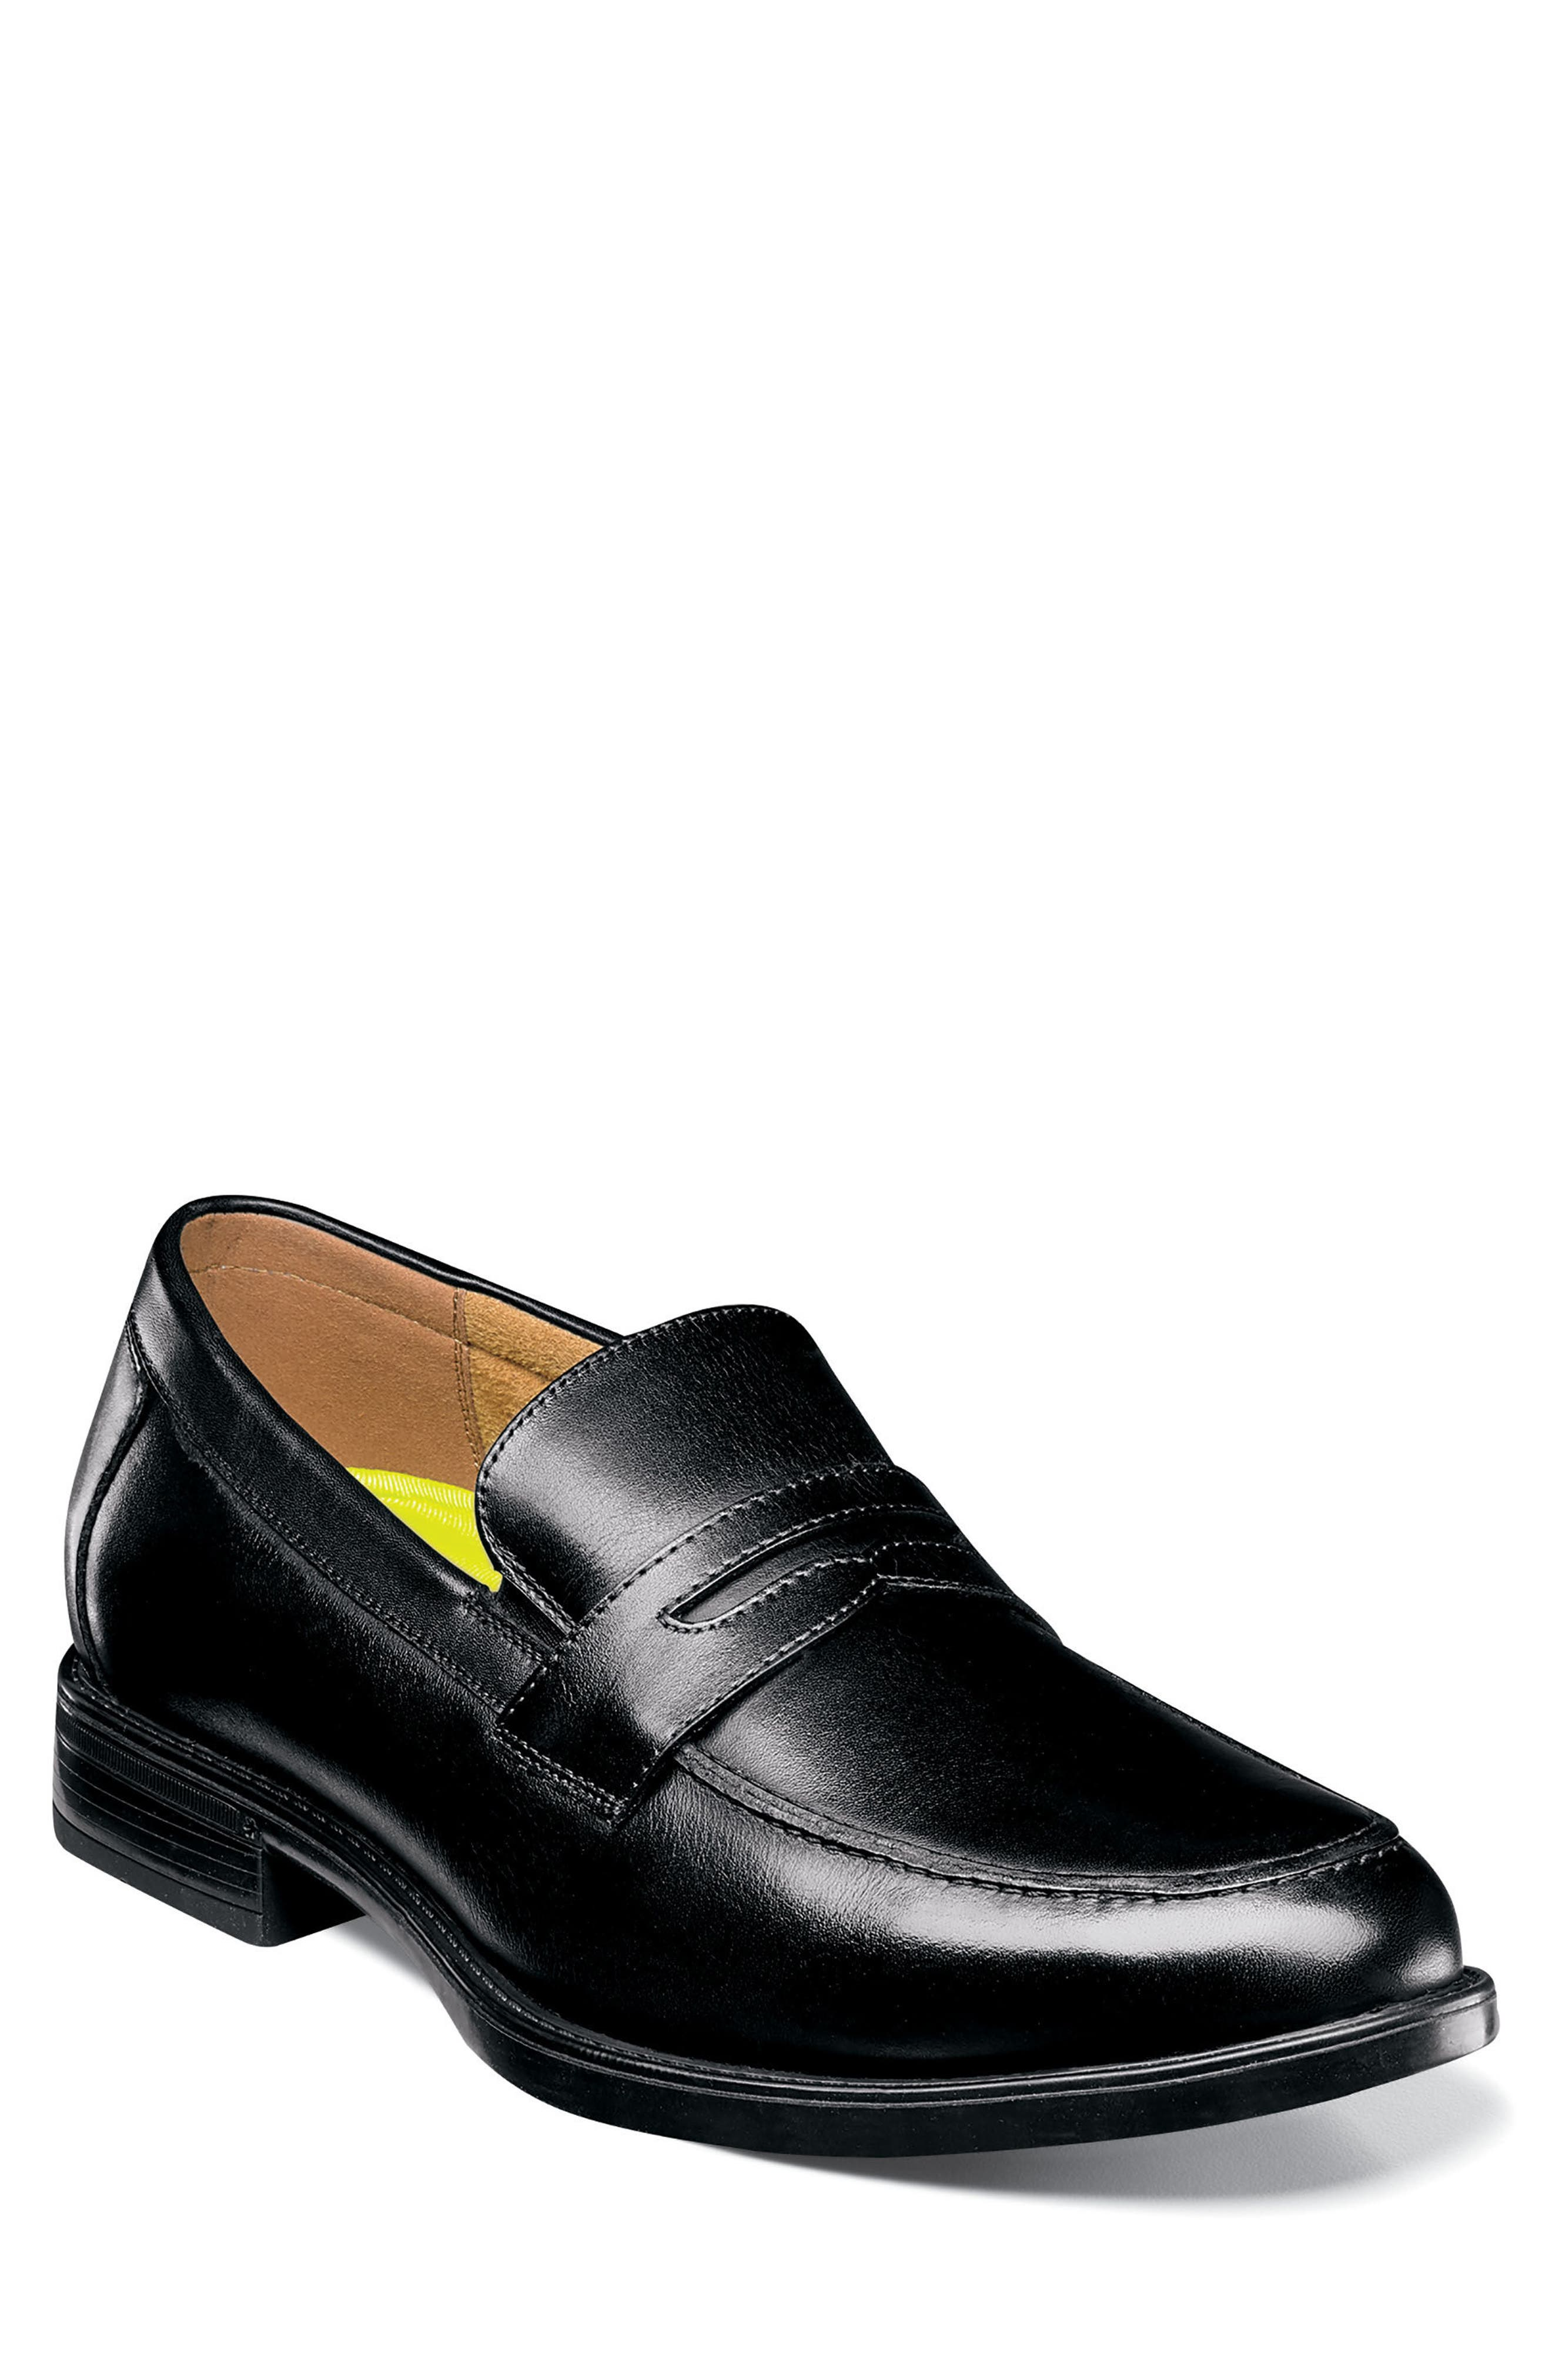 Midtown Penny Loafer,                         Main,                         color, 001